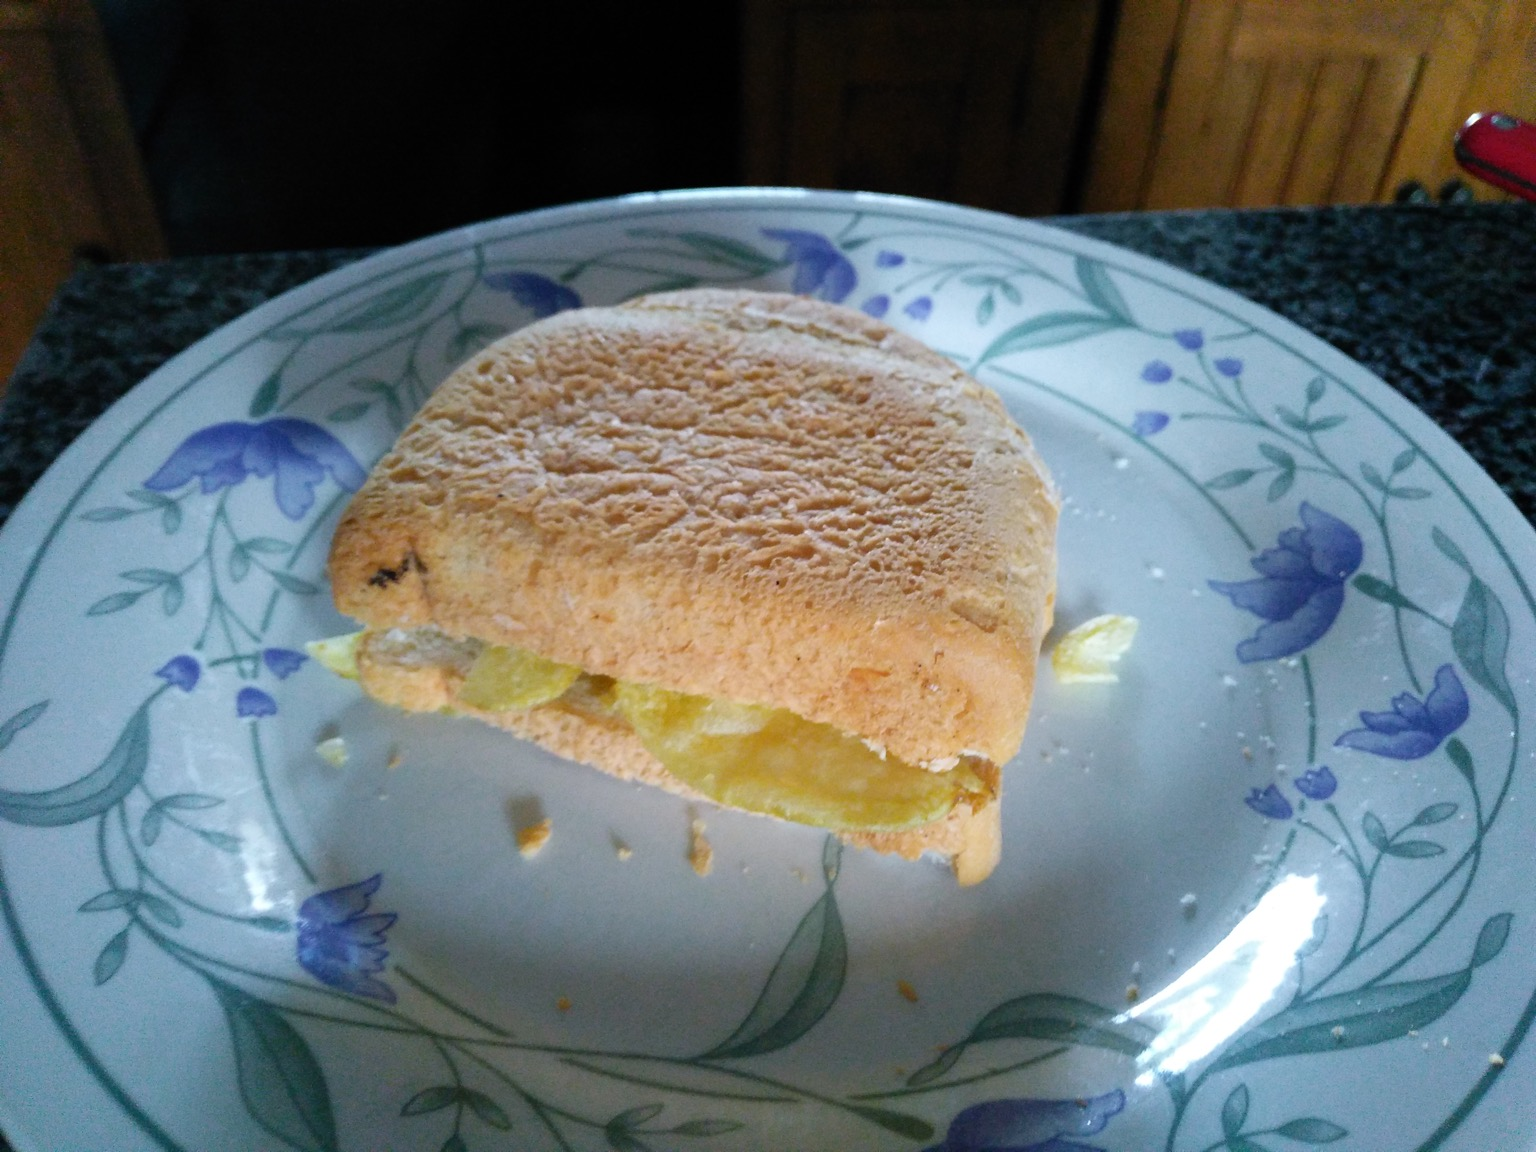 White crisp sandwich with crust on top